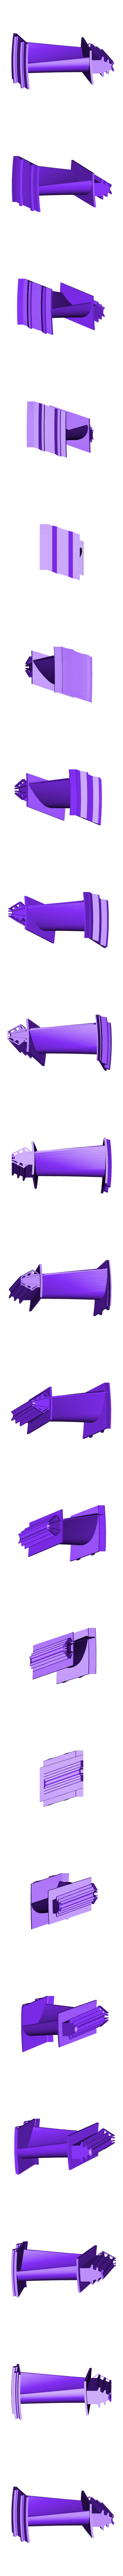 Turb-Blade101ws.stl Download STL file Jet Engine Component (2); Axial Turbine • 3D print template, konchan77